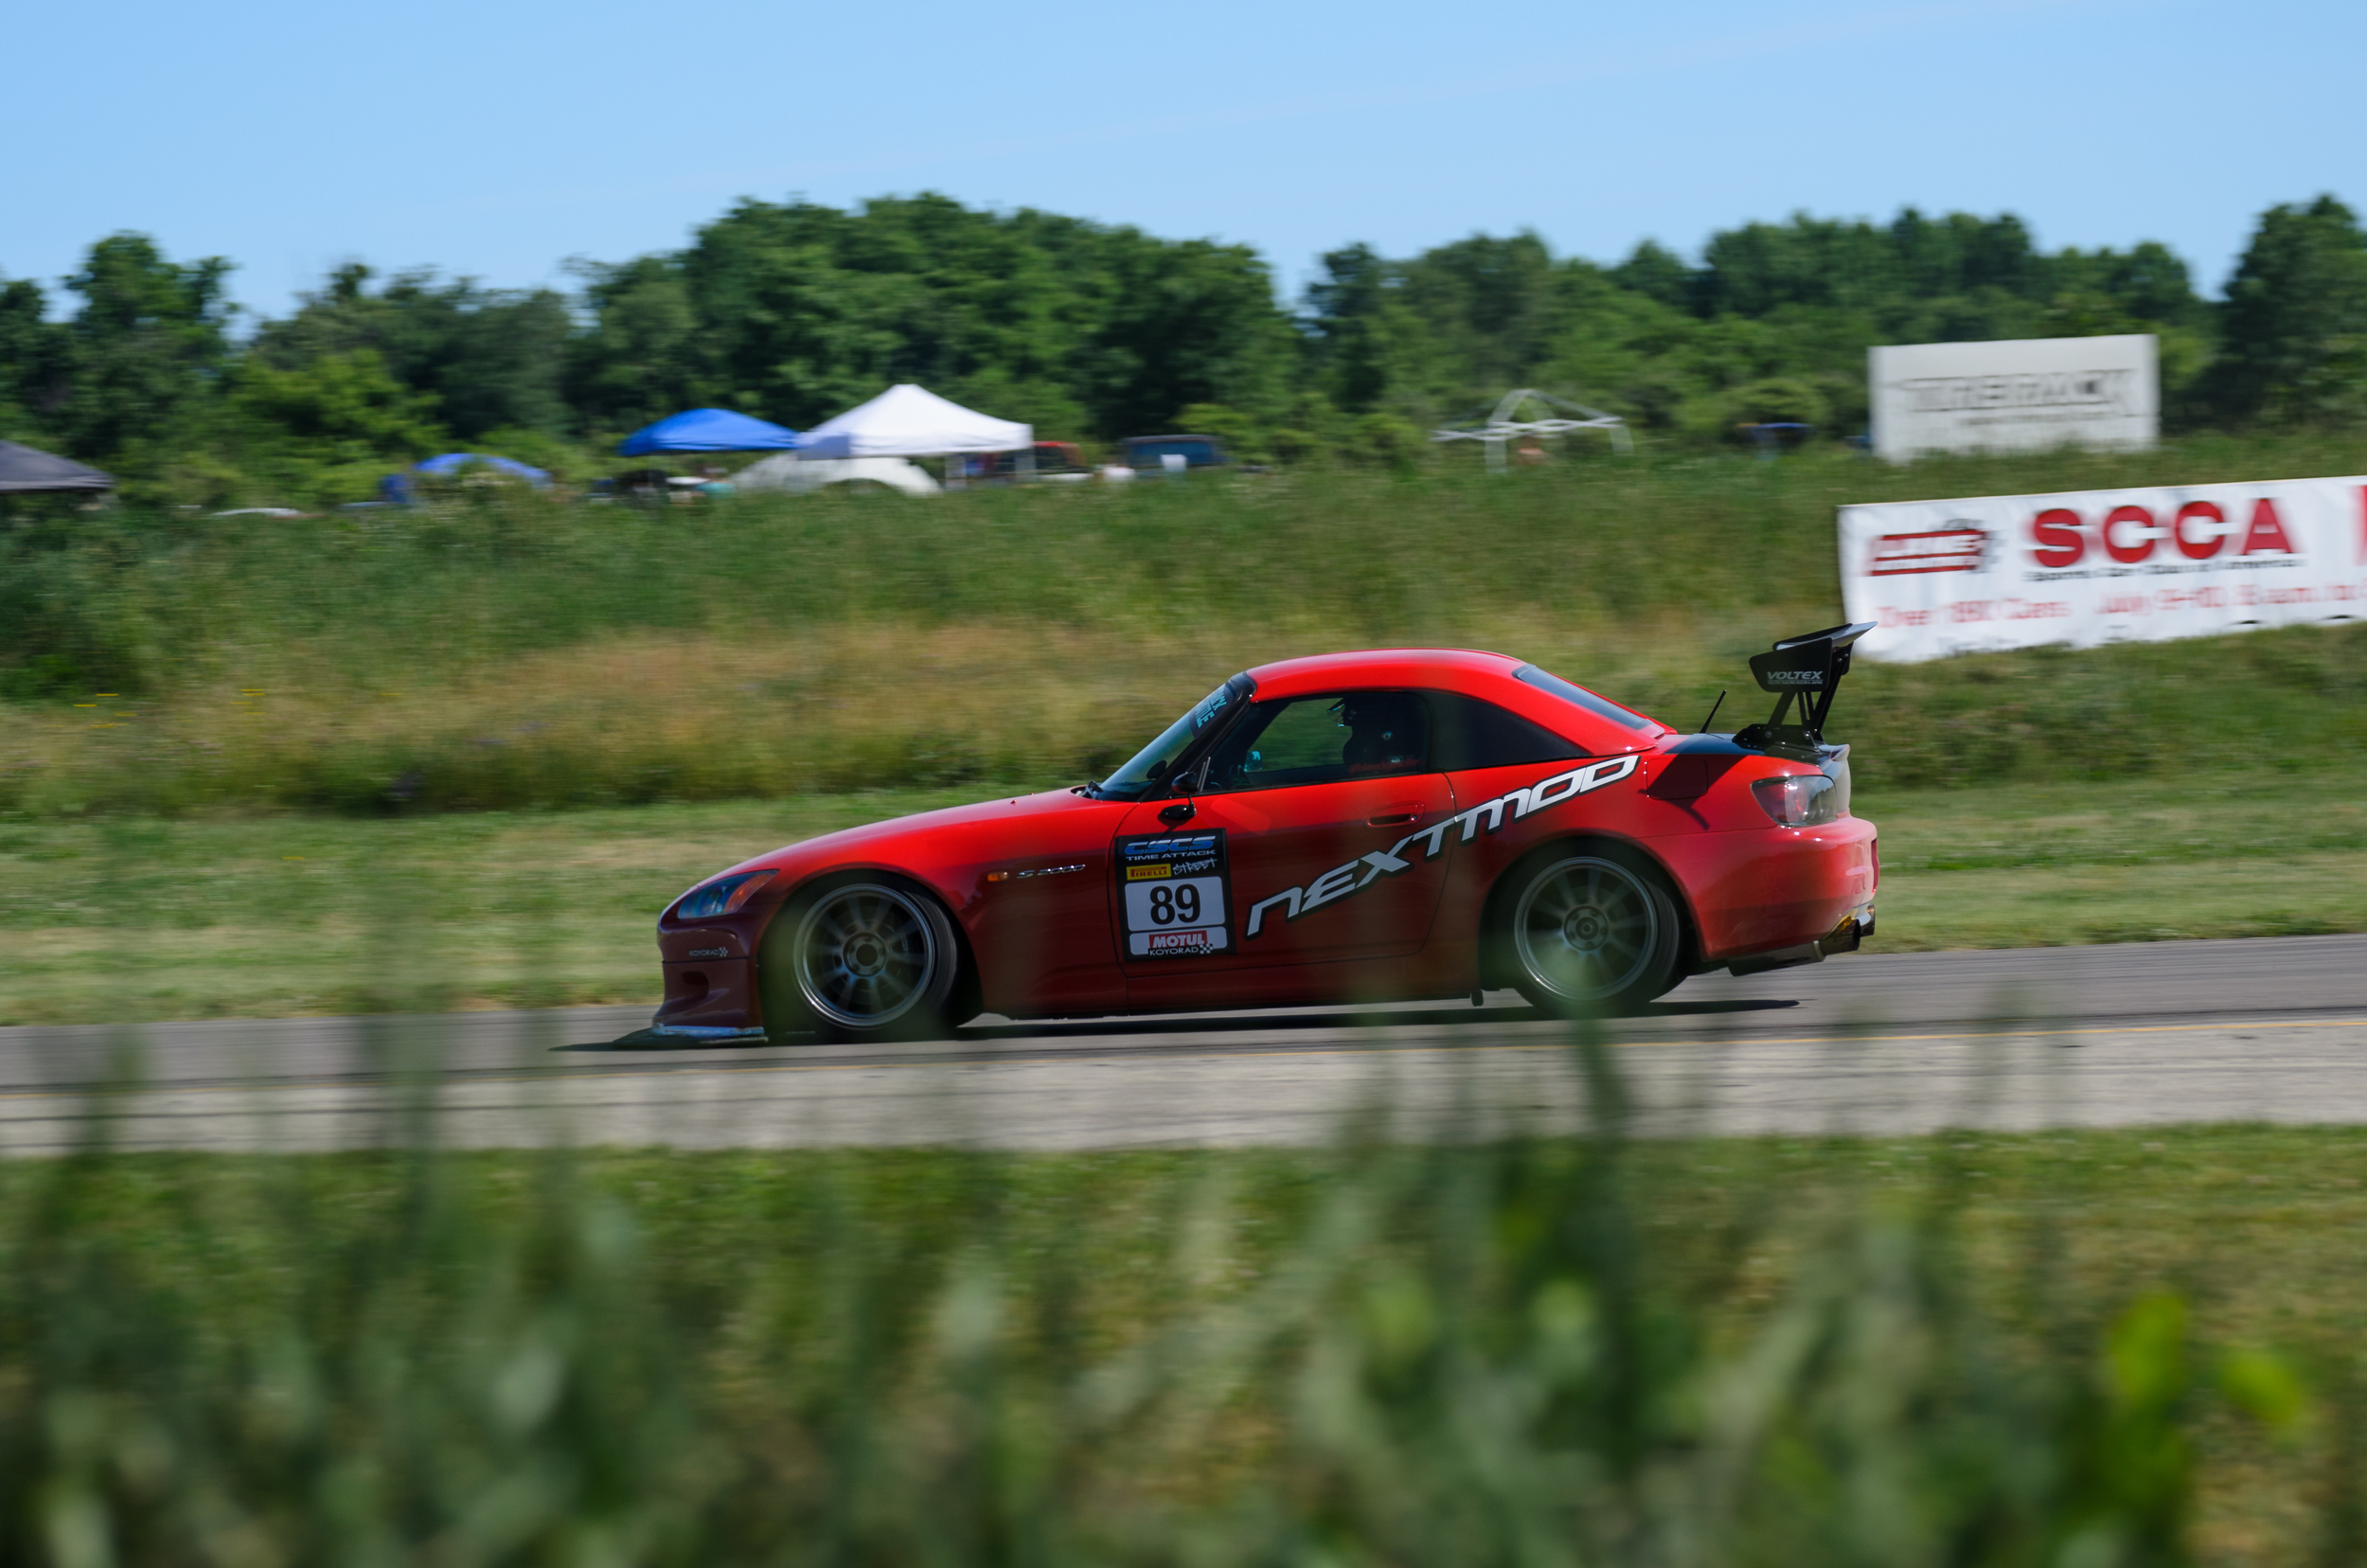 Nextmod's  S2000 came down from Canada and ran with in 1 second from the Gingerman N/A, Street Tire S2000 record. That's beyond impressive. Sadly they missed first place in Street RWD by one tenth. Official time of 1:41.959